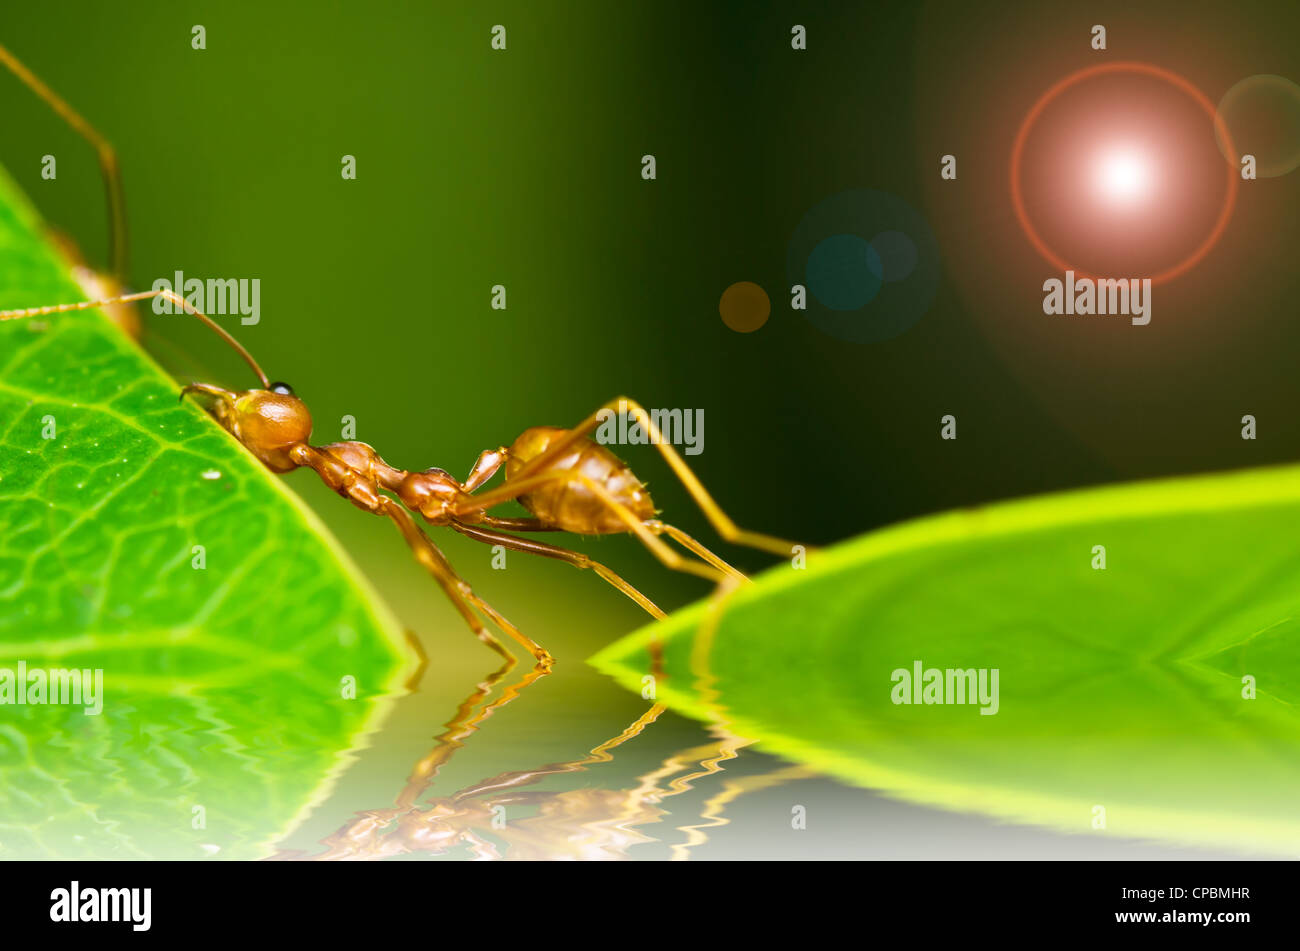 red ant so tired hard work weak - Stock Image